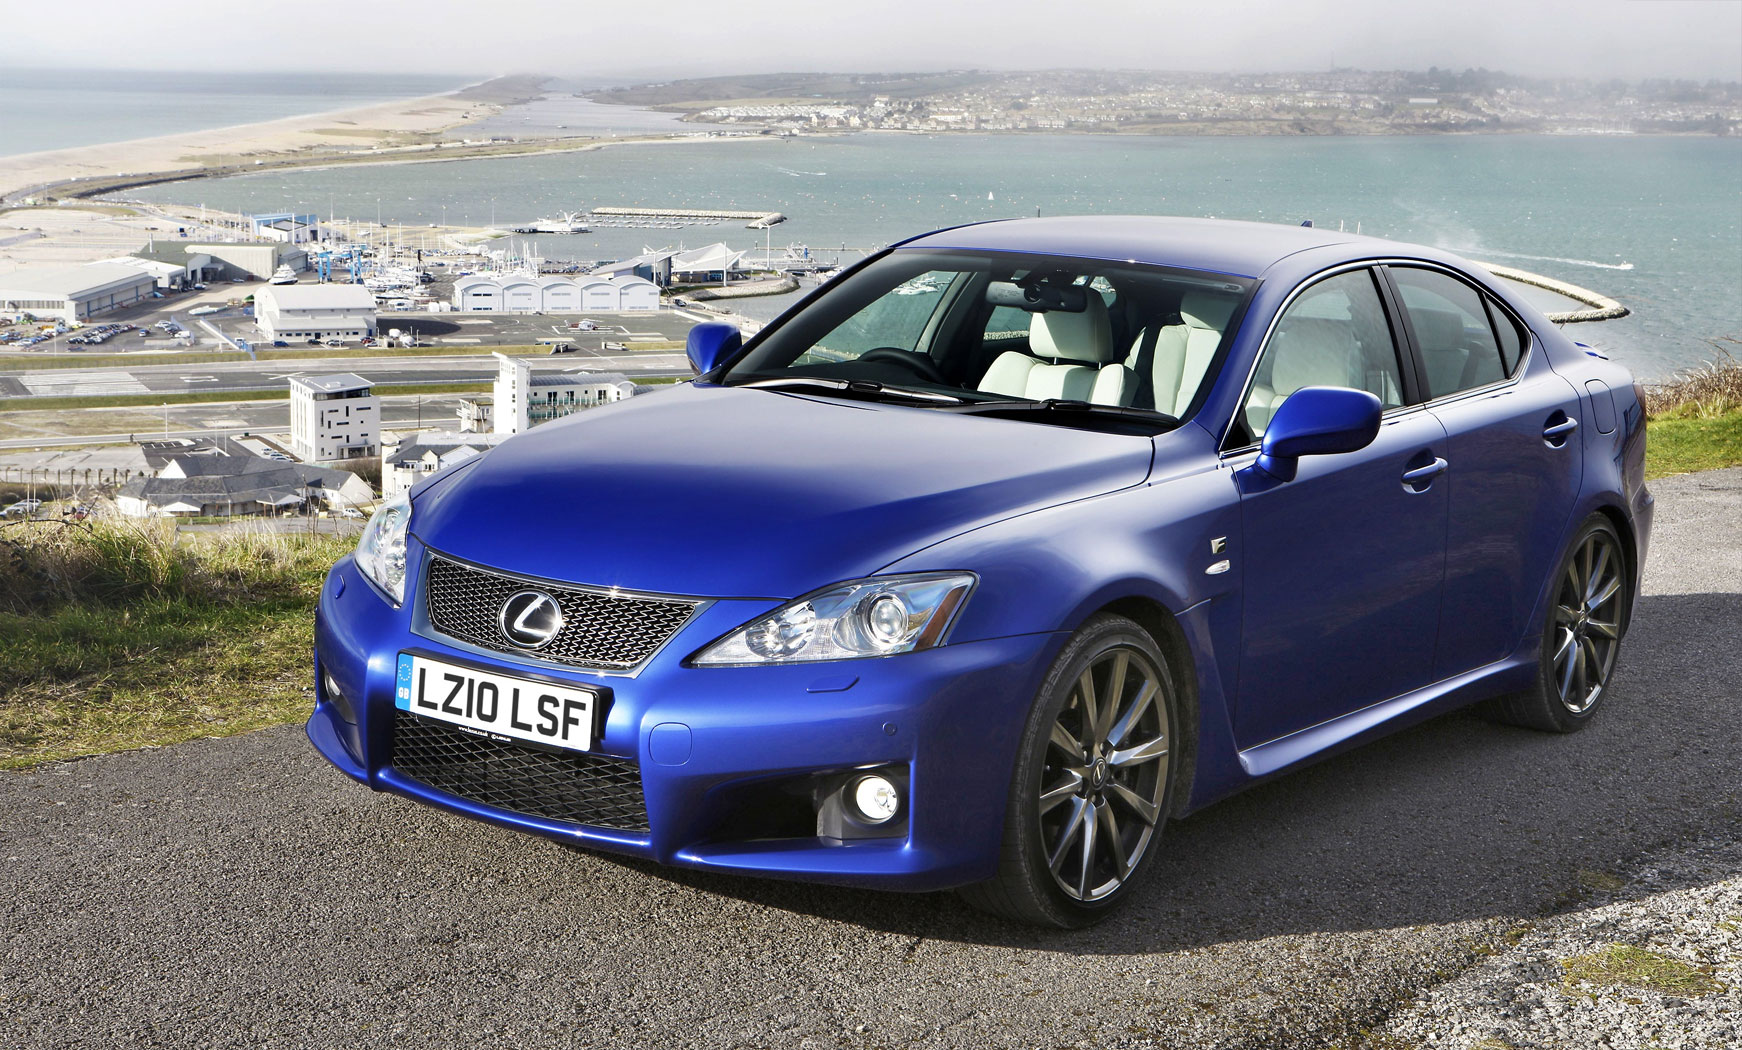 new 2010 lexus is f photo gallery lexus enthusiast. Black Bedroom Furniture Sets. Home Design Ideas